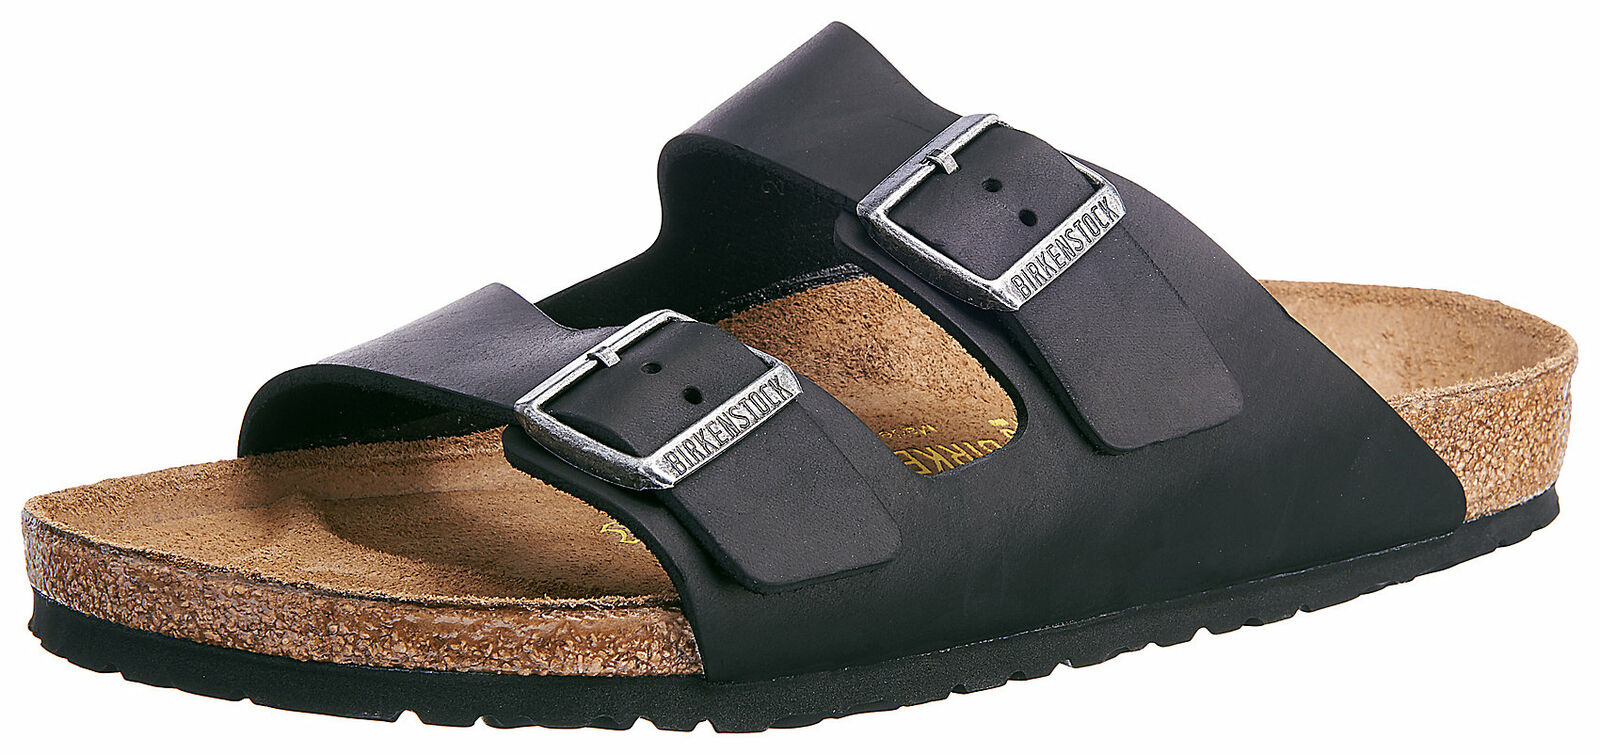 neu birkenstock arizona fl offene schuhe 5710203 f r herren eur 36 99 picclick de. Black Bedroom Furniture Sets. Home Design Ideas